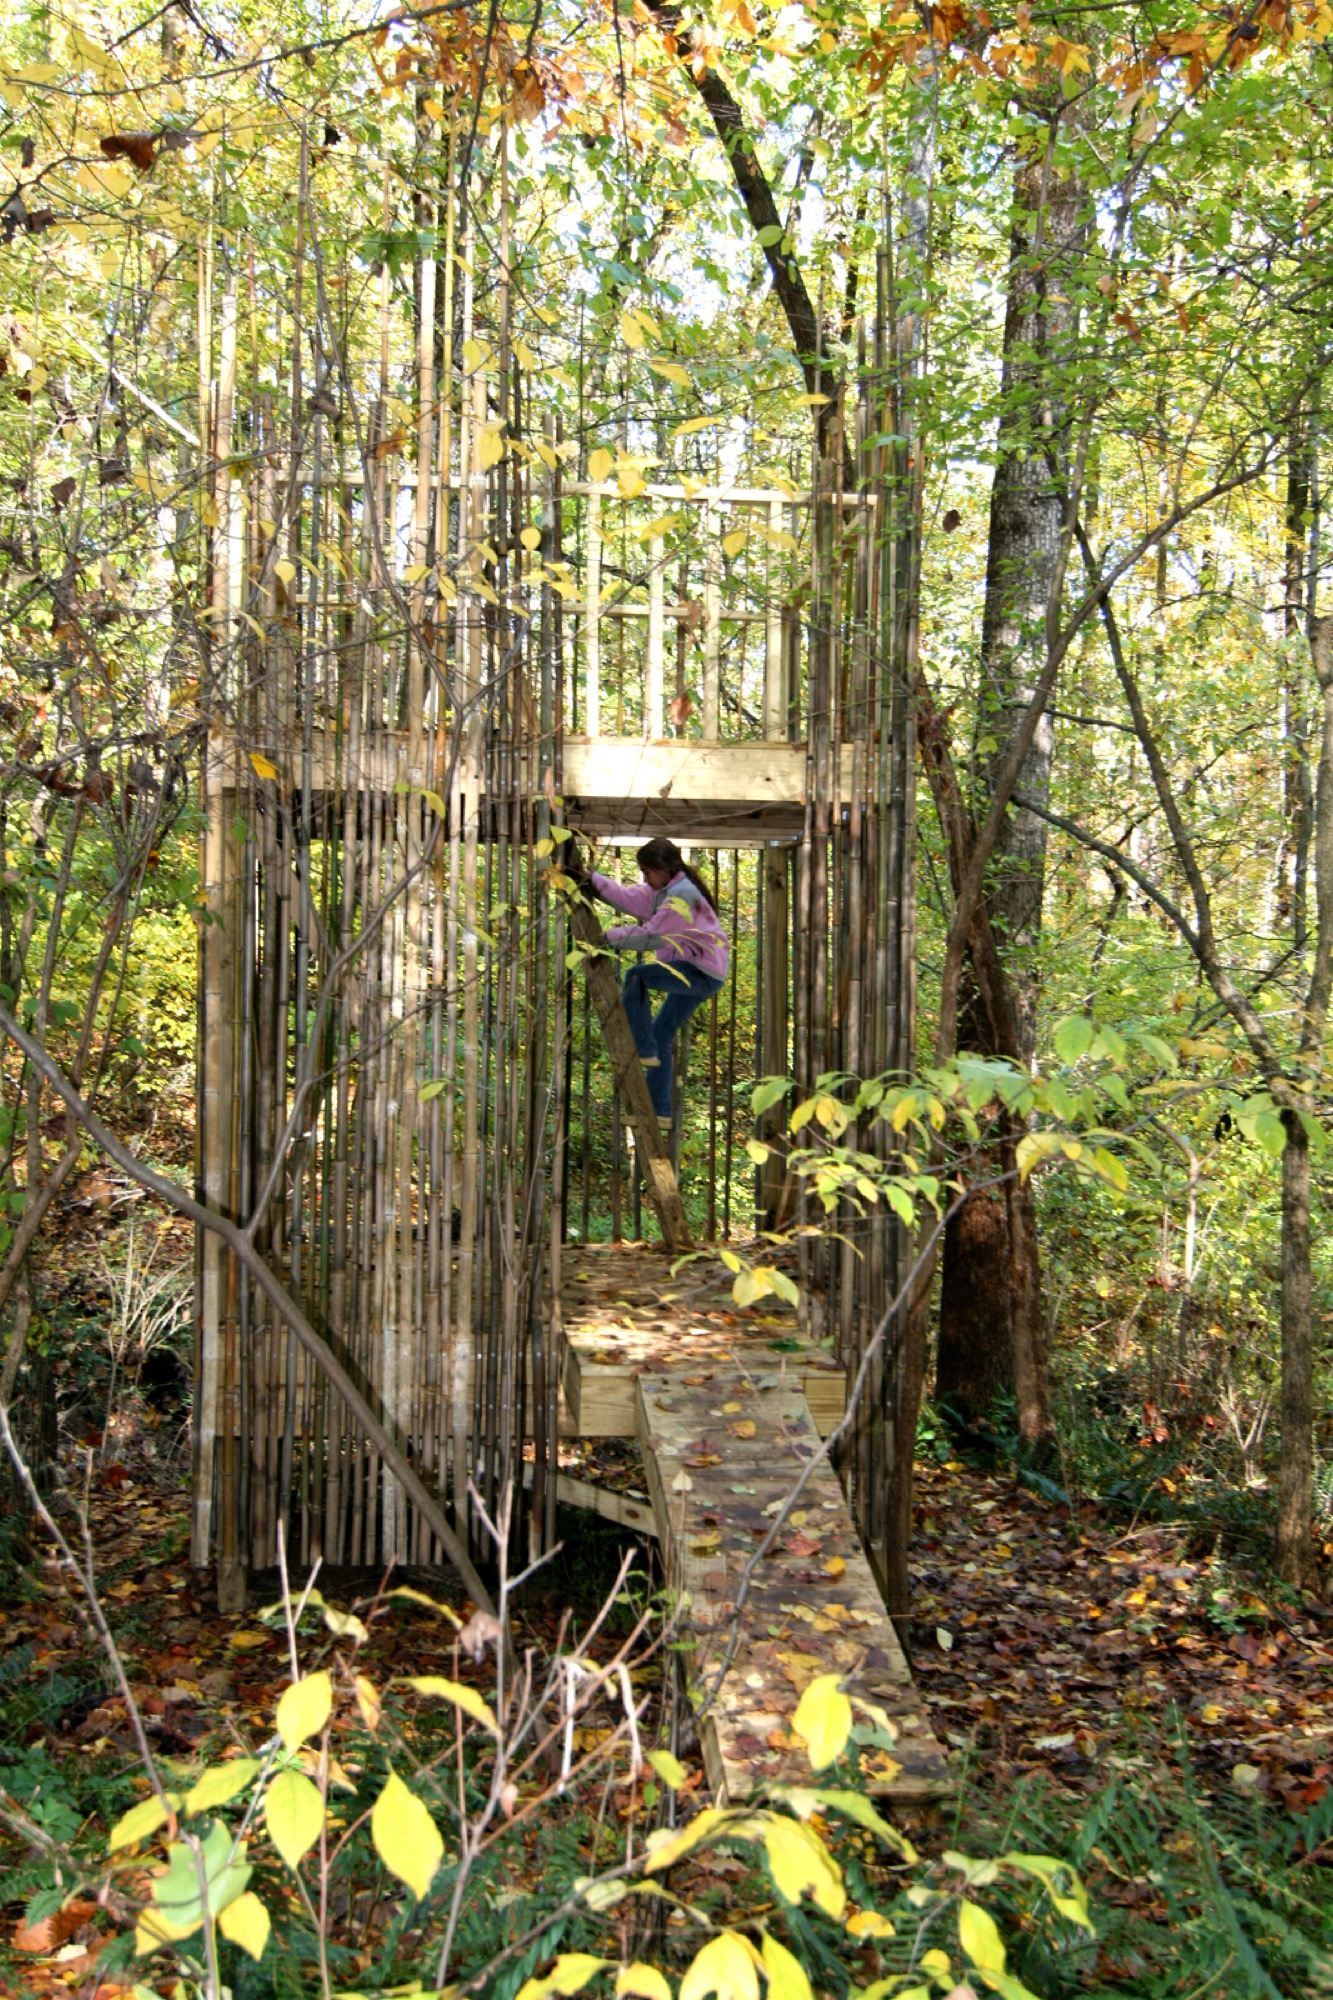 Treehouse designed by architects Laurie Stubb and her husband Peter